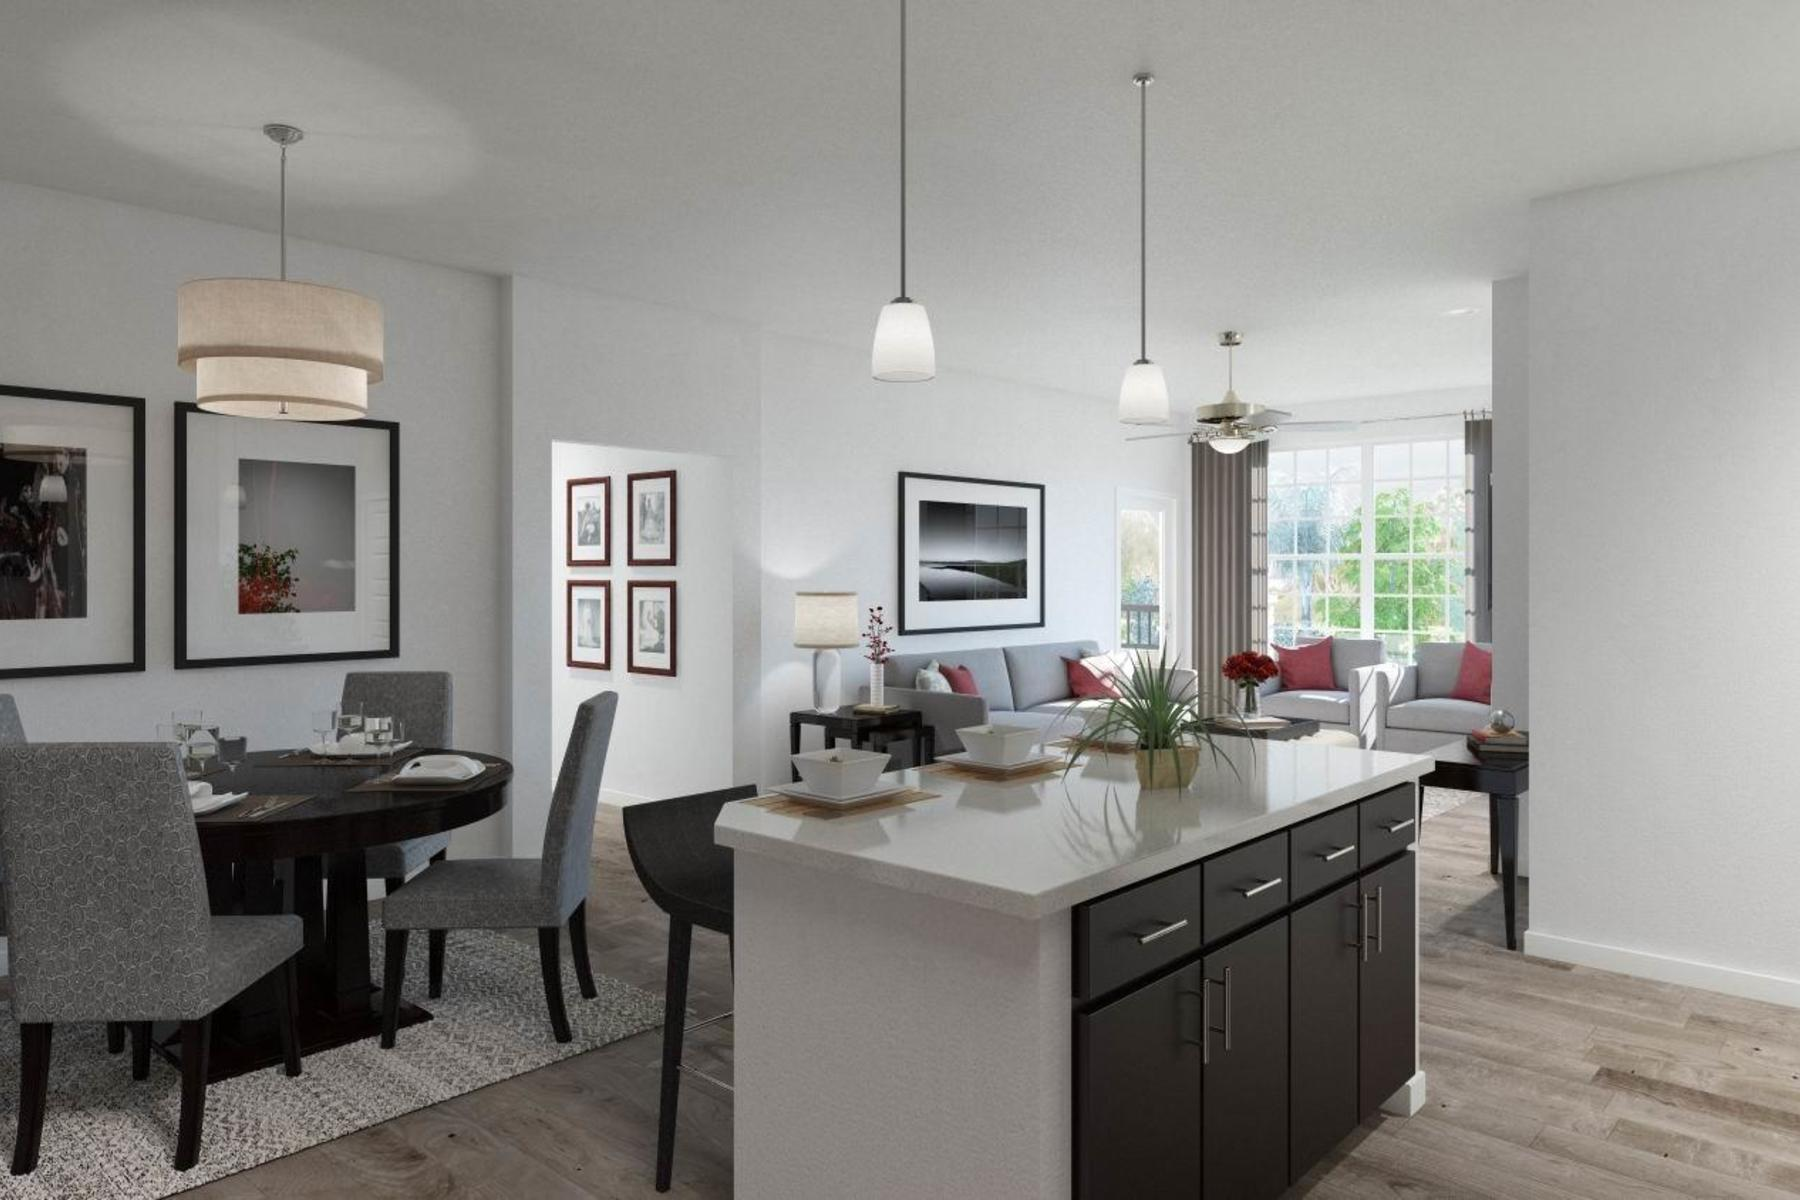 Single Family Home for Active at New construction Condos in an established community in Parker. 17353 Wilde Ln #205, Bldg 6 Parker, Colorado 80134 United States